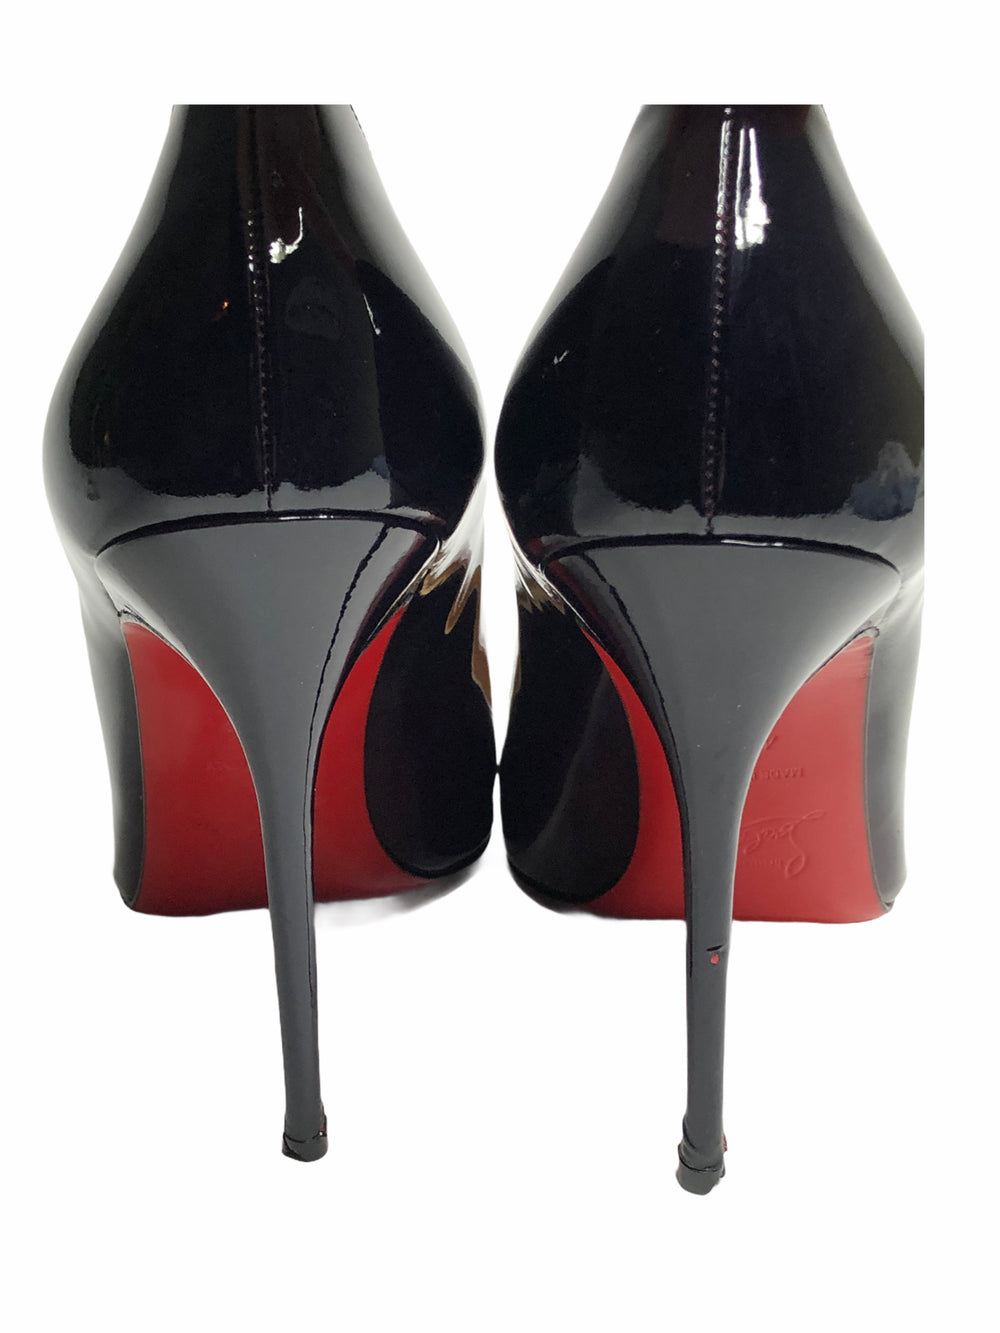 Christian Louboutines - UK 7.5 - As Seen on Instagram 29/10/2020